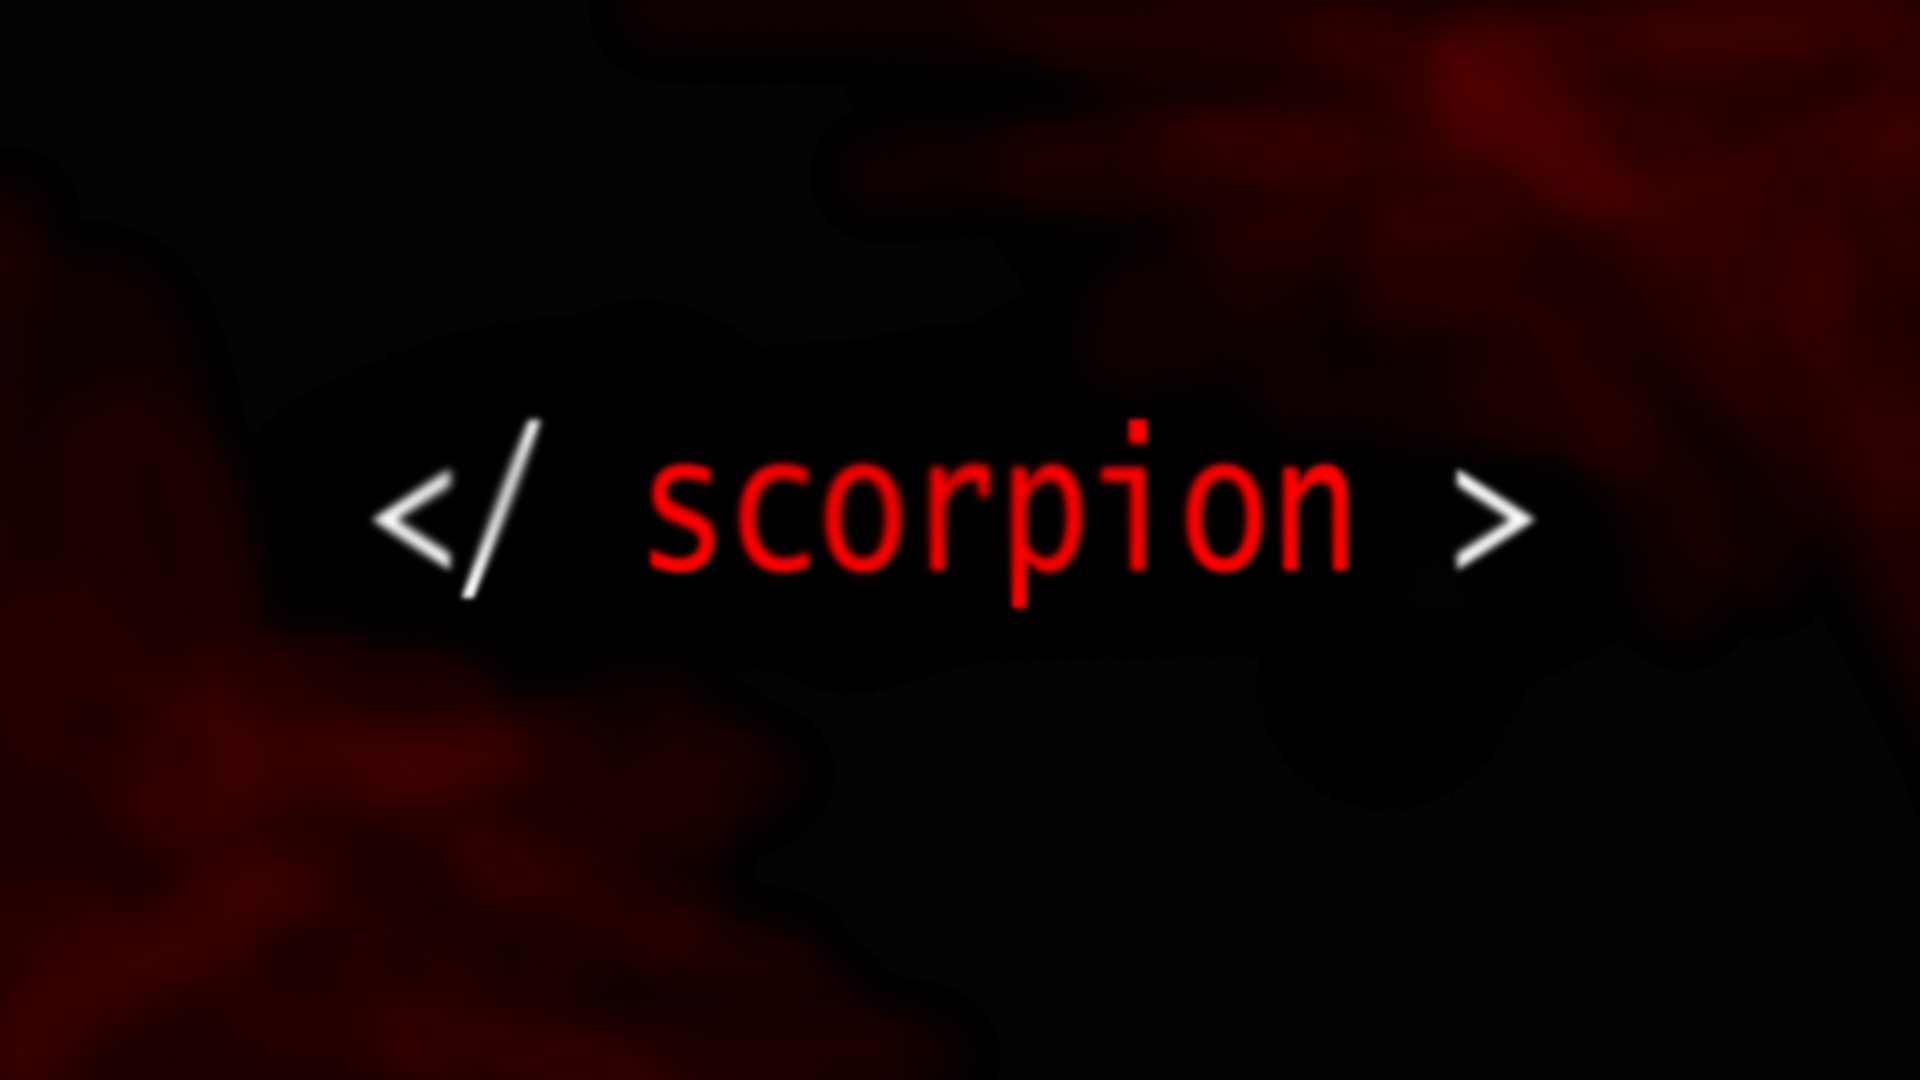 Scorpion TV Series